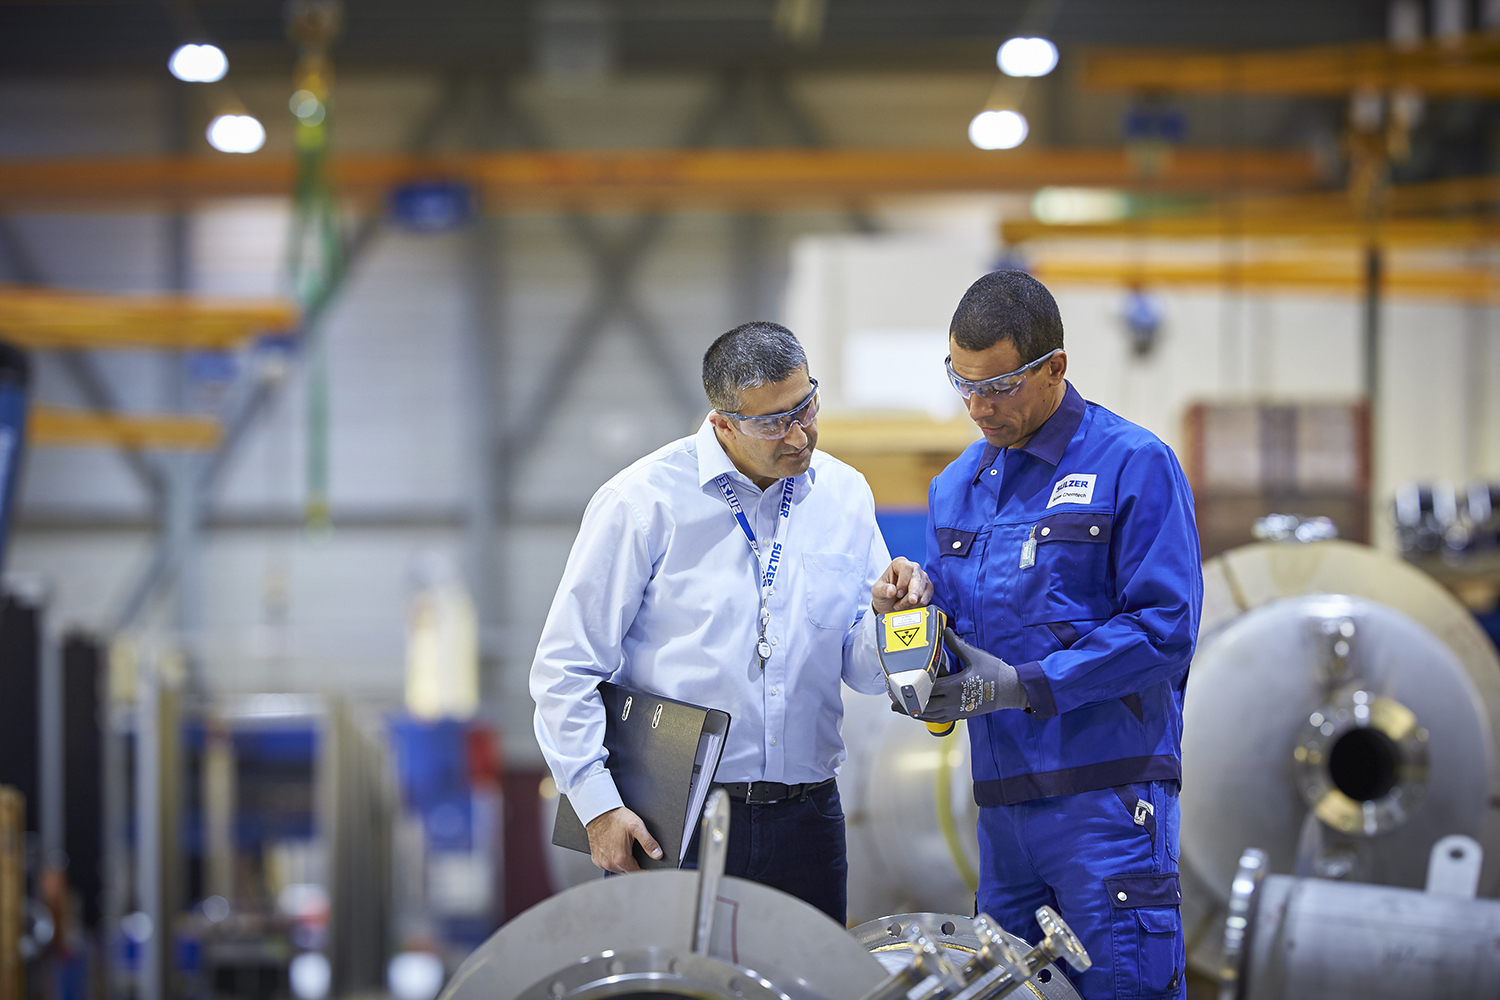 Sulzer's separation technology helps turn carbon emissions into biofuels